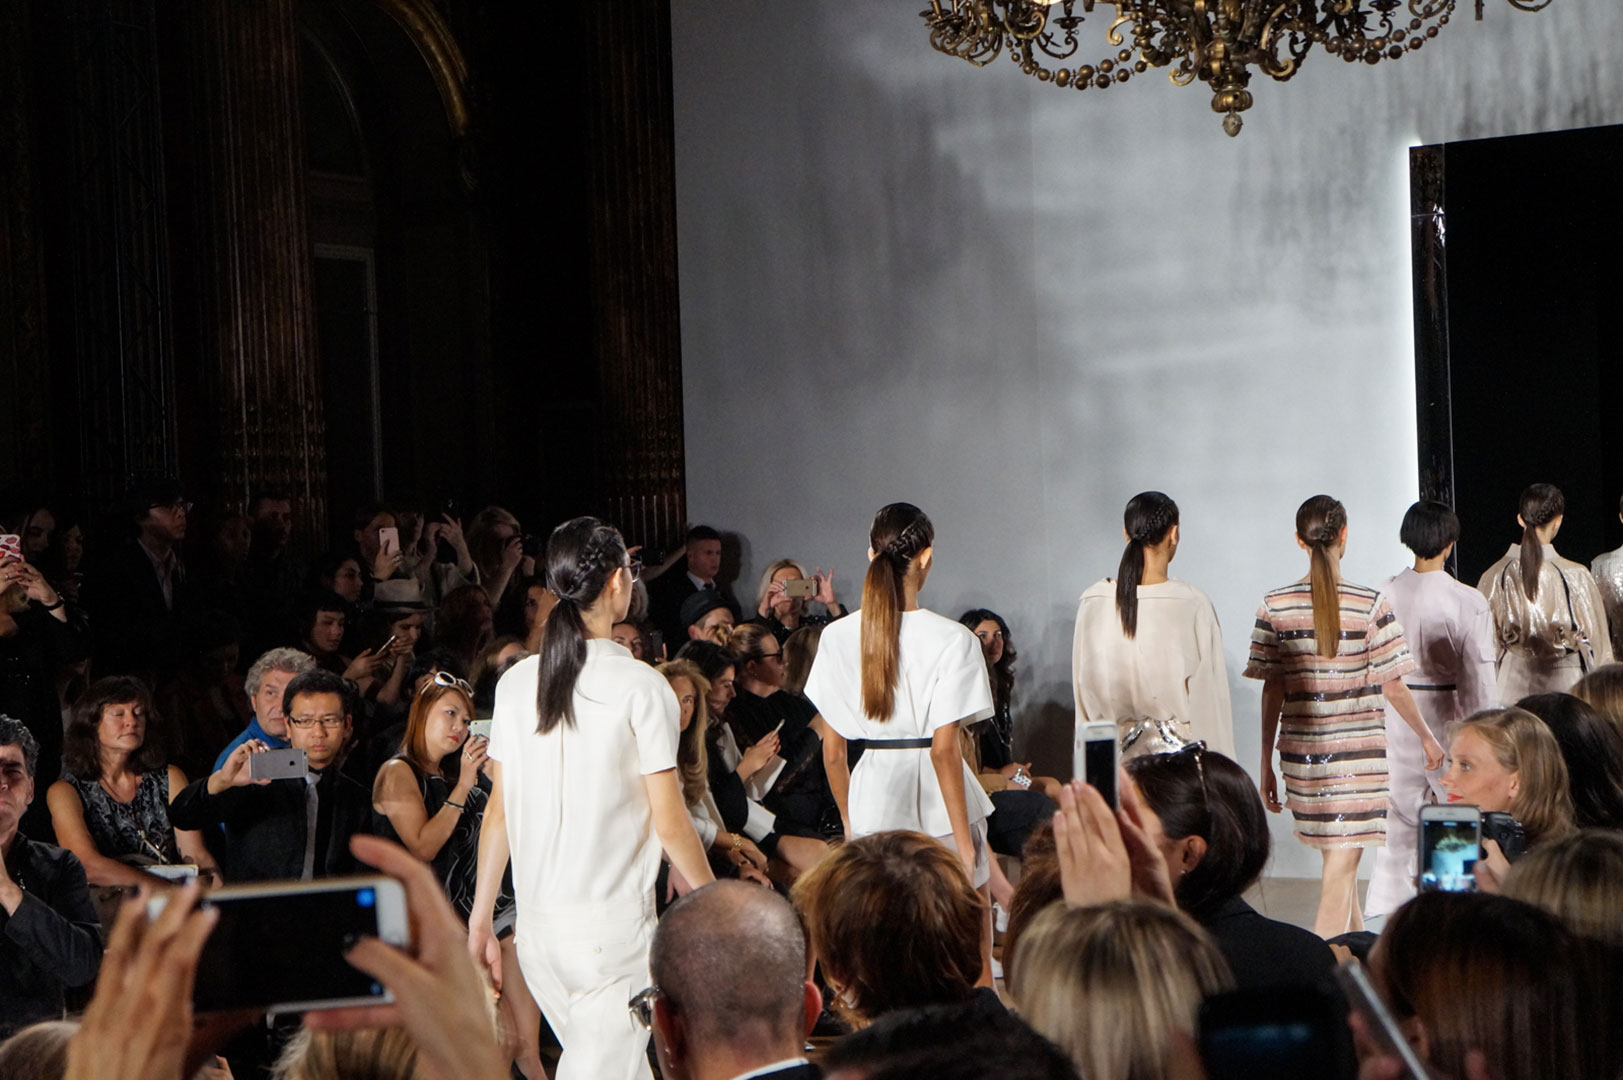 my-paris-fashion-week-diary-paris-by-polina-paraskevopoulou-all-rights-reserved-27